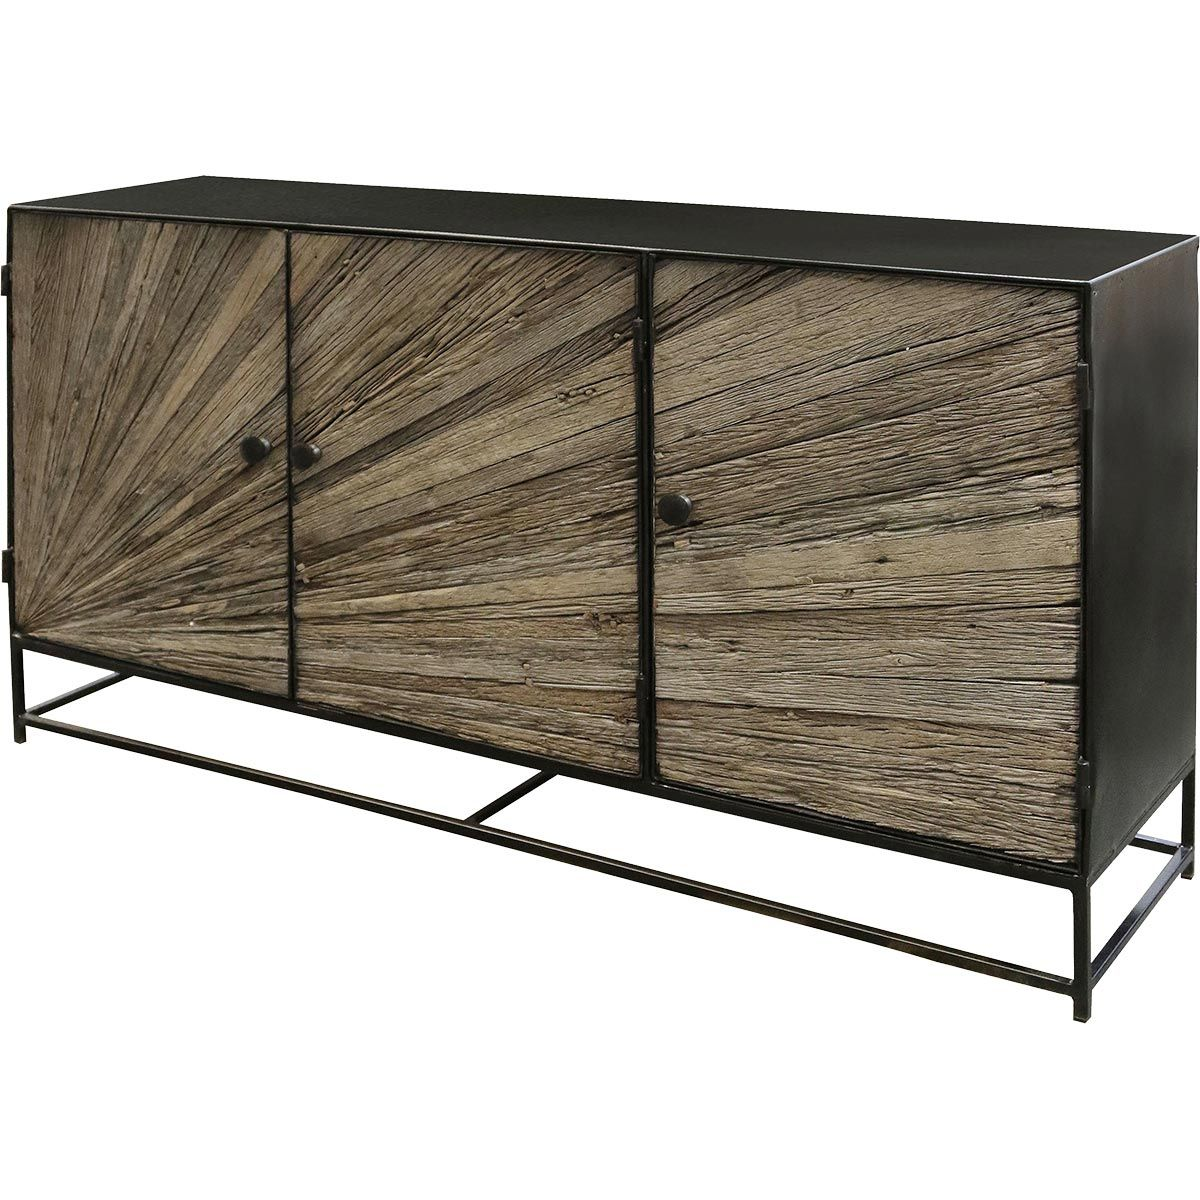 Reclaimed Wood Rays Sideboard